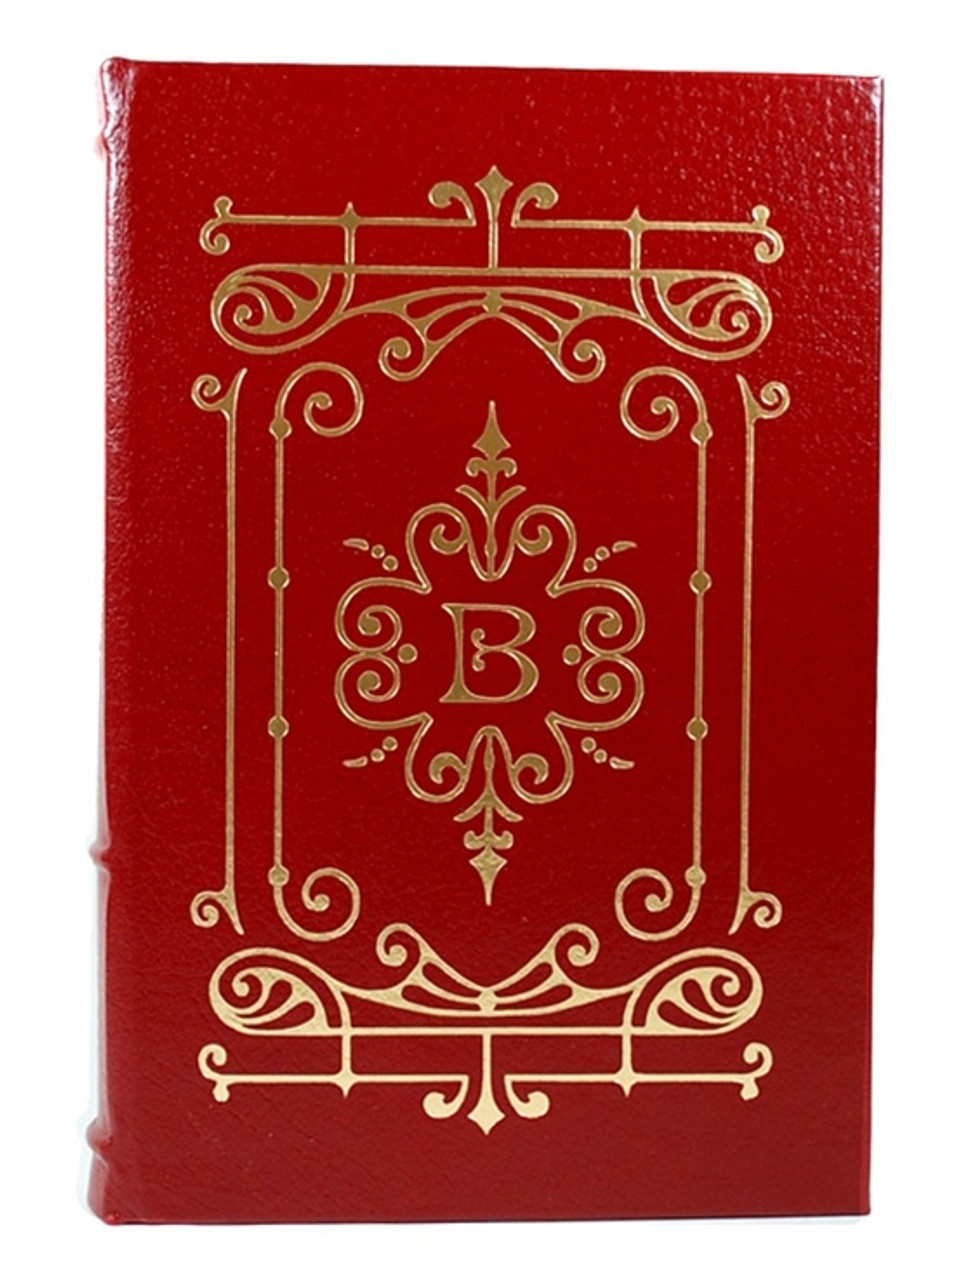 Easton Press - Ray Bradbury 'Something Wicked This Way Comes' Leather Bound Limited Edition - Very Fine